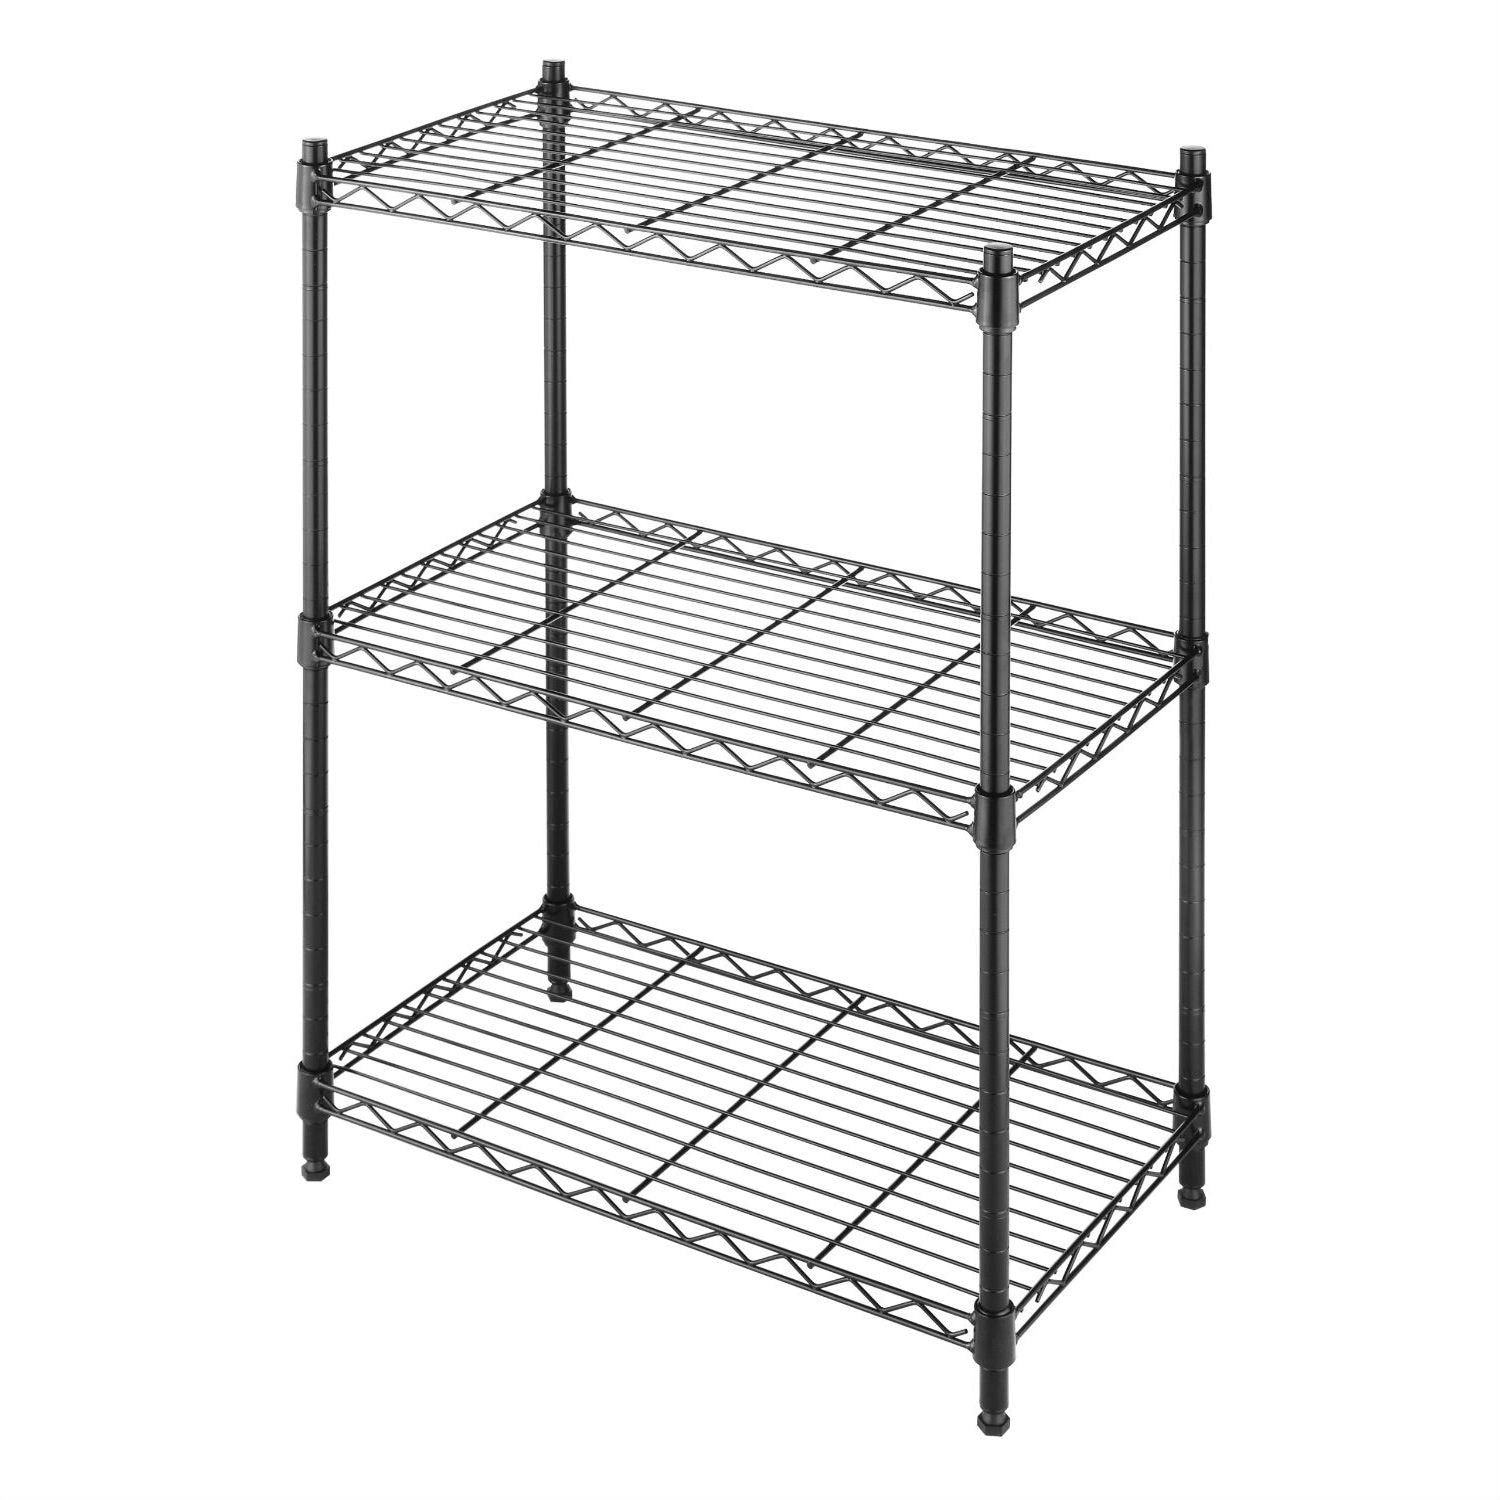 3-Shelf Storage Rack Shelving Unit in Black Metal with Adj. Feet